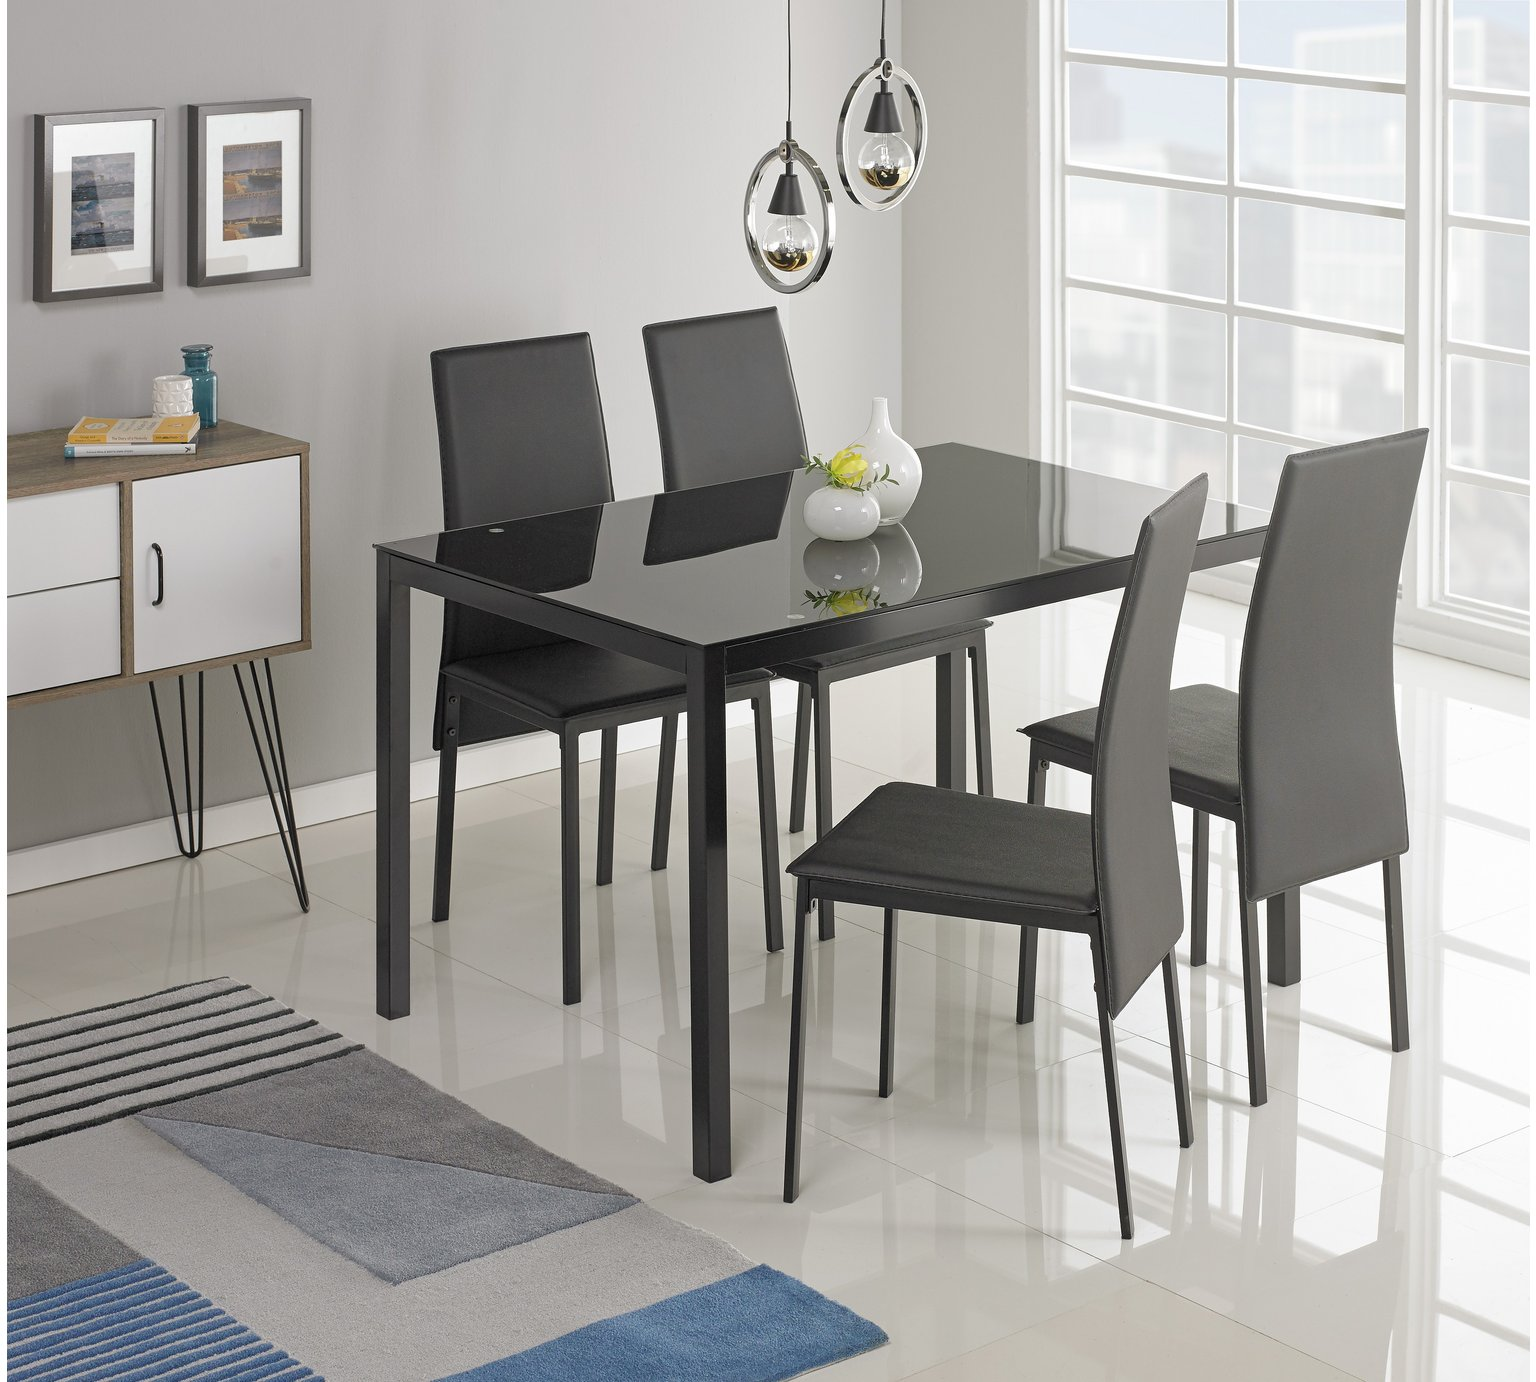 Buy Argos Home Lido Glass Dining Table 4 Chairs Black Dining